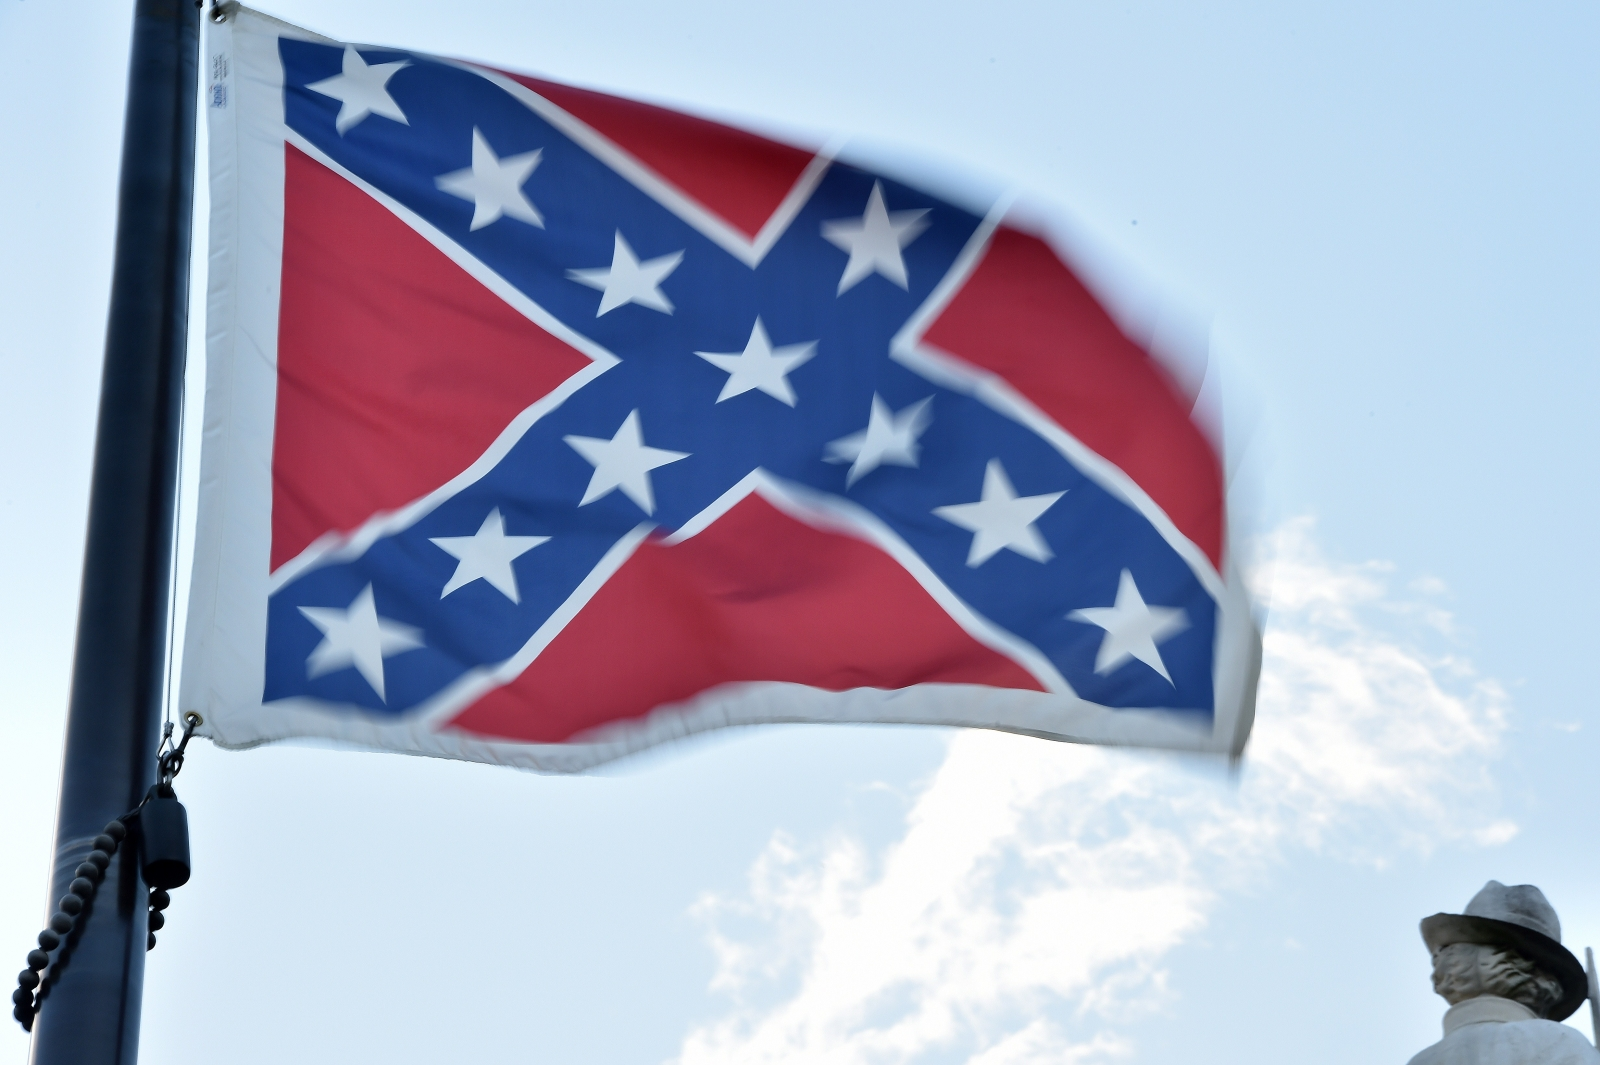 Is The Confederate Flag Racist